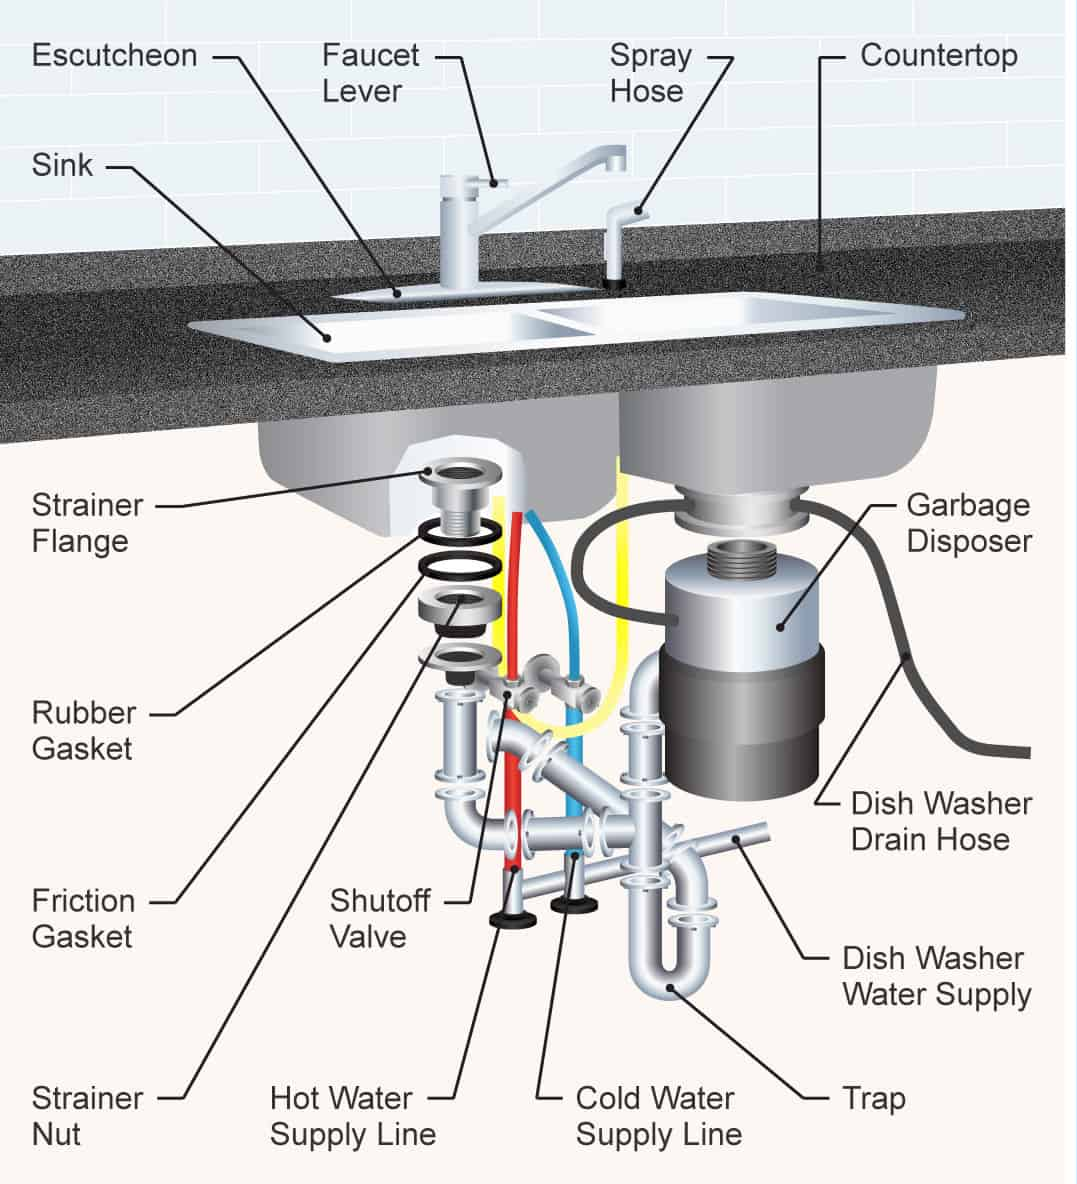 anatomy of a kitchen sink the 35 parts of a kitchen sink detailed diagram 7450